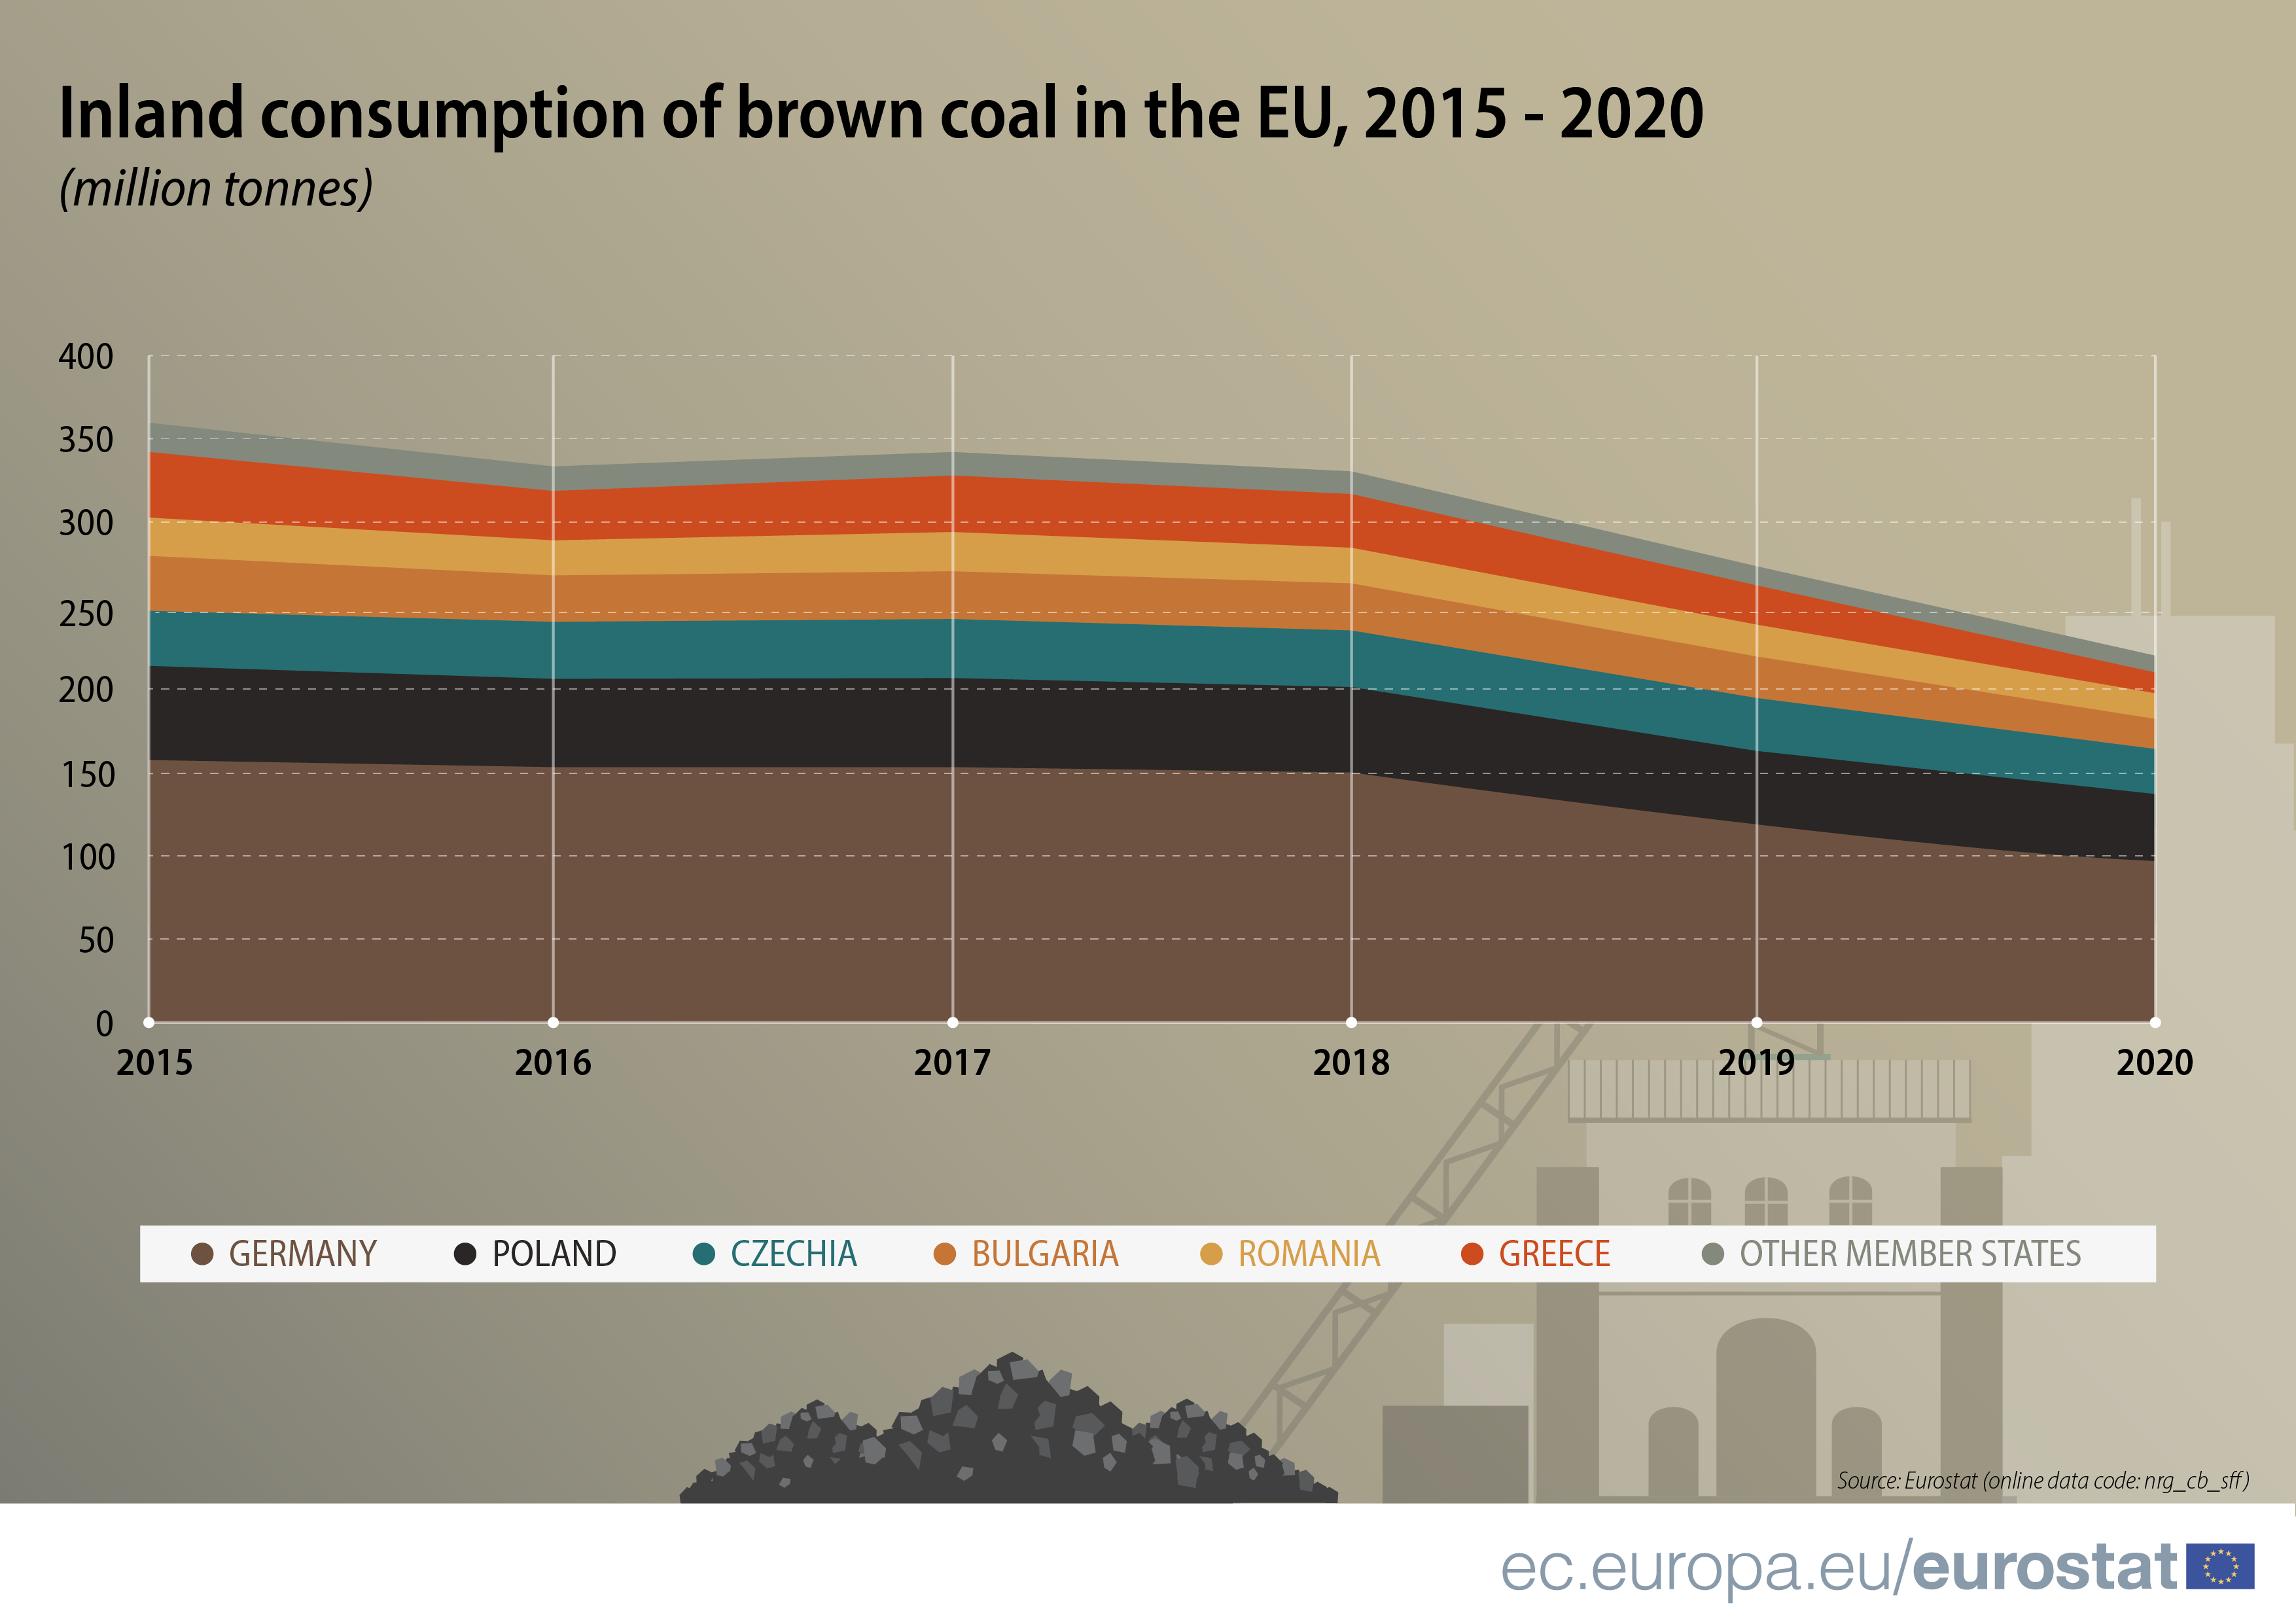 Chart showing the decreasing amount of inland brown coal consumption in the EU from 2015 to 2020 (from just over 350 million tonnes to just over 200 million tonnes). The largest consumers are Germany, Poland, Czechia, Bulgaria, Romania and Greece).